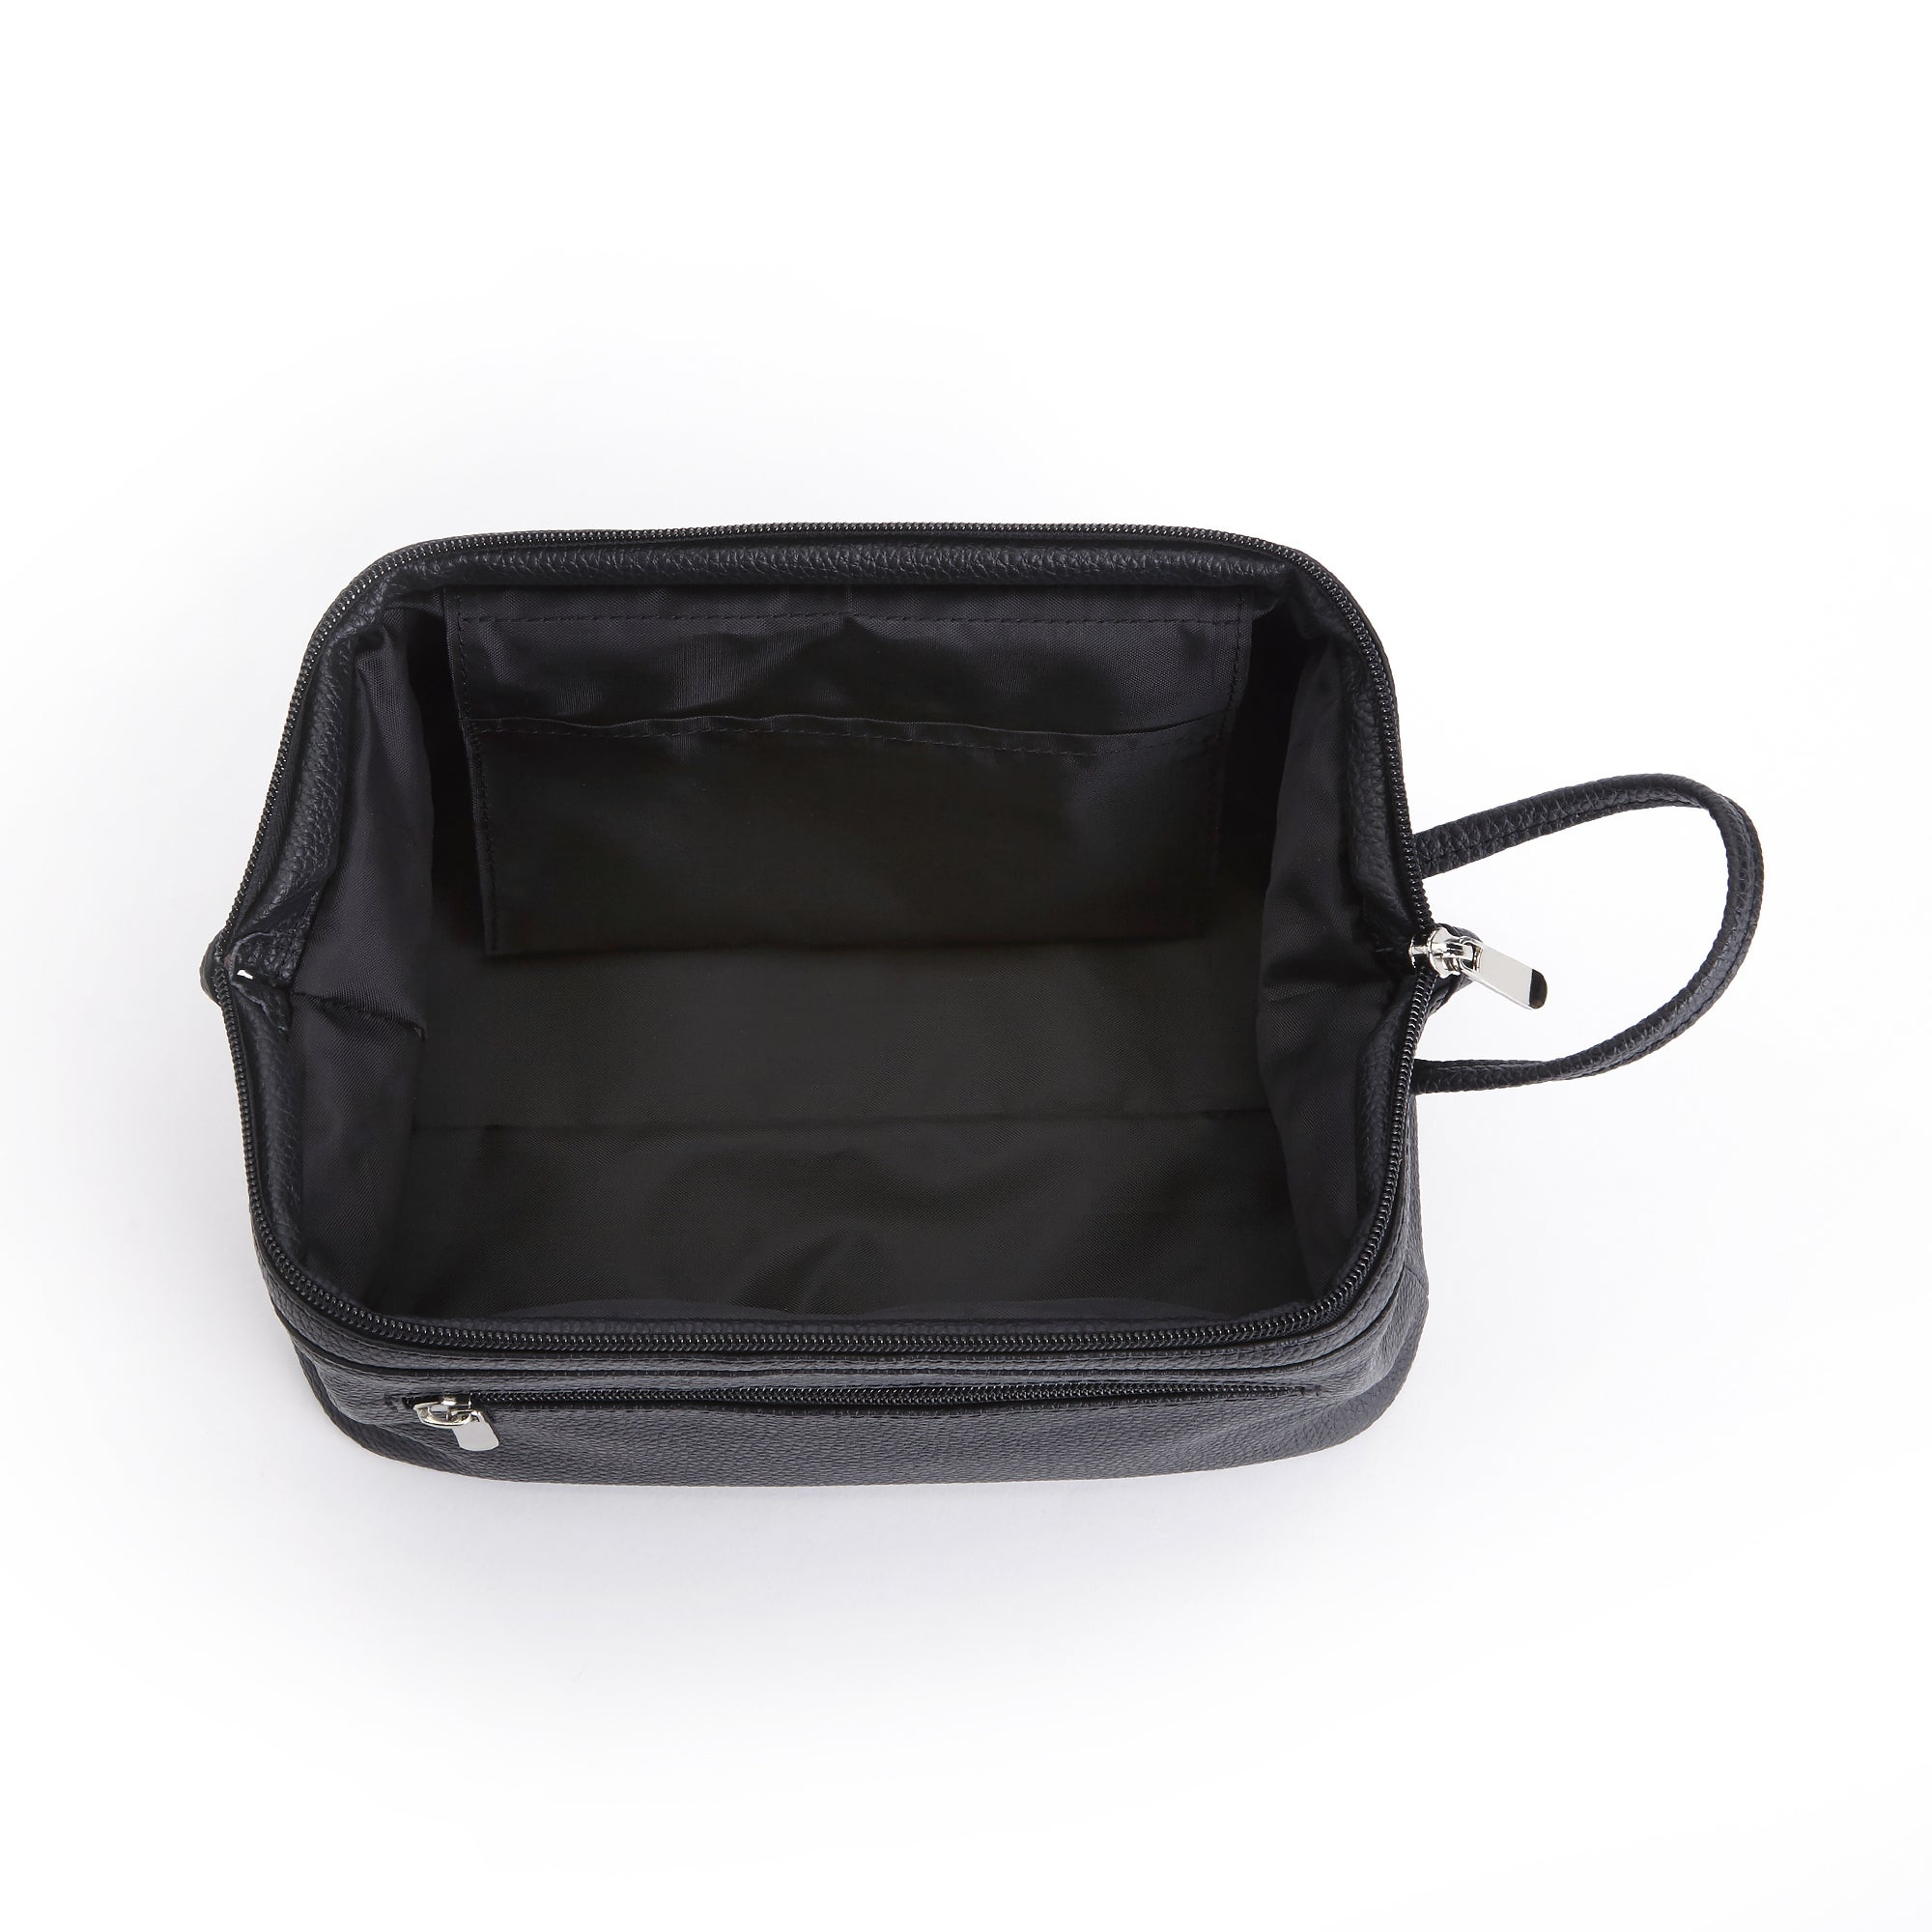 2d5f083951db Shop Royce Pebbled Genuine Leather Toiletry Travel Wash Bag - On Sale -  Free Shipping Today - Overstock - 11997588